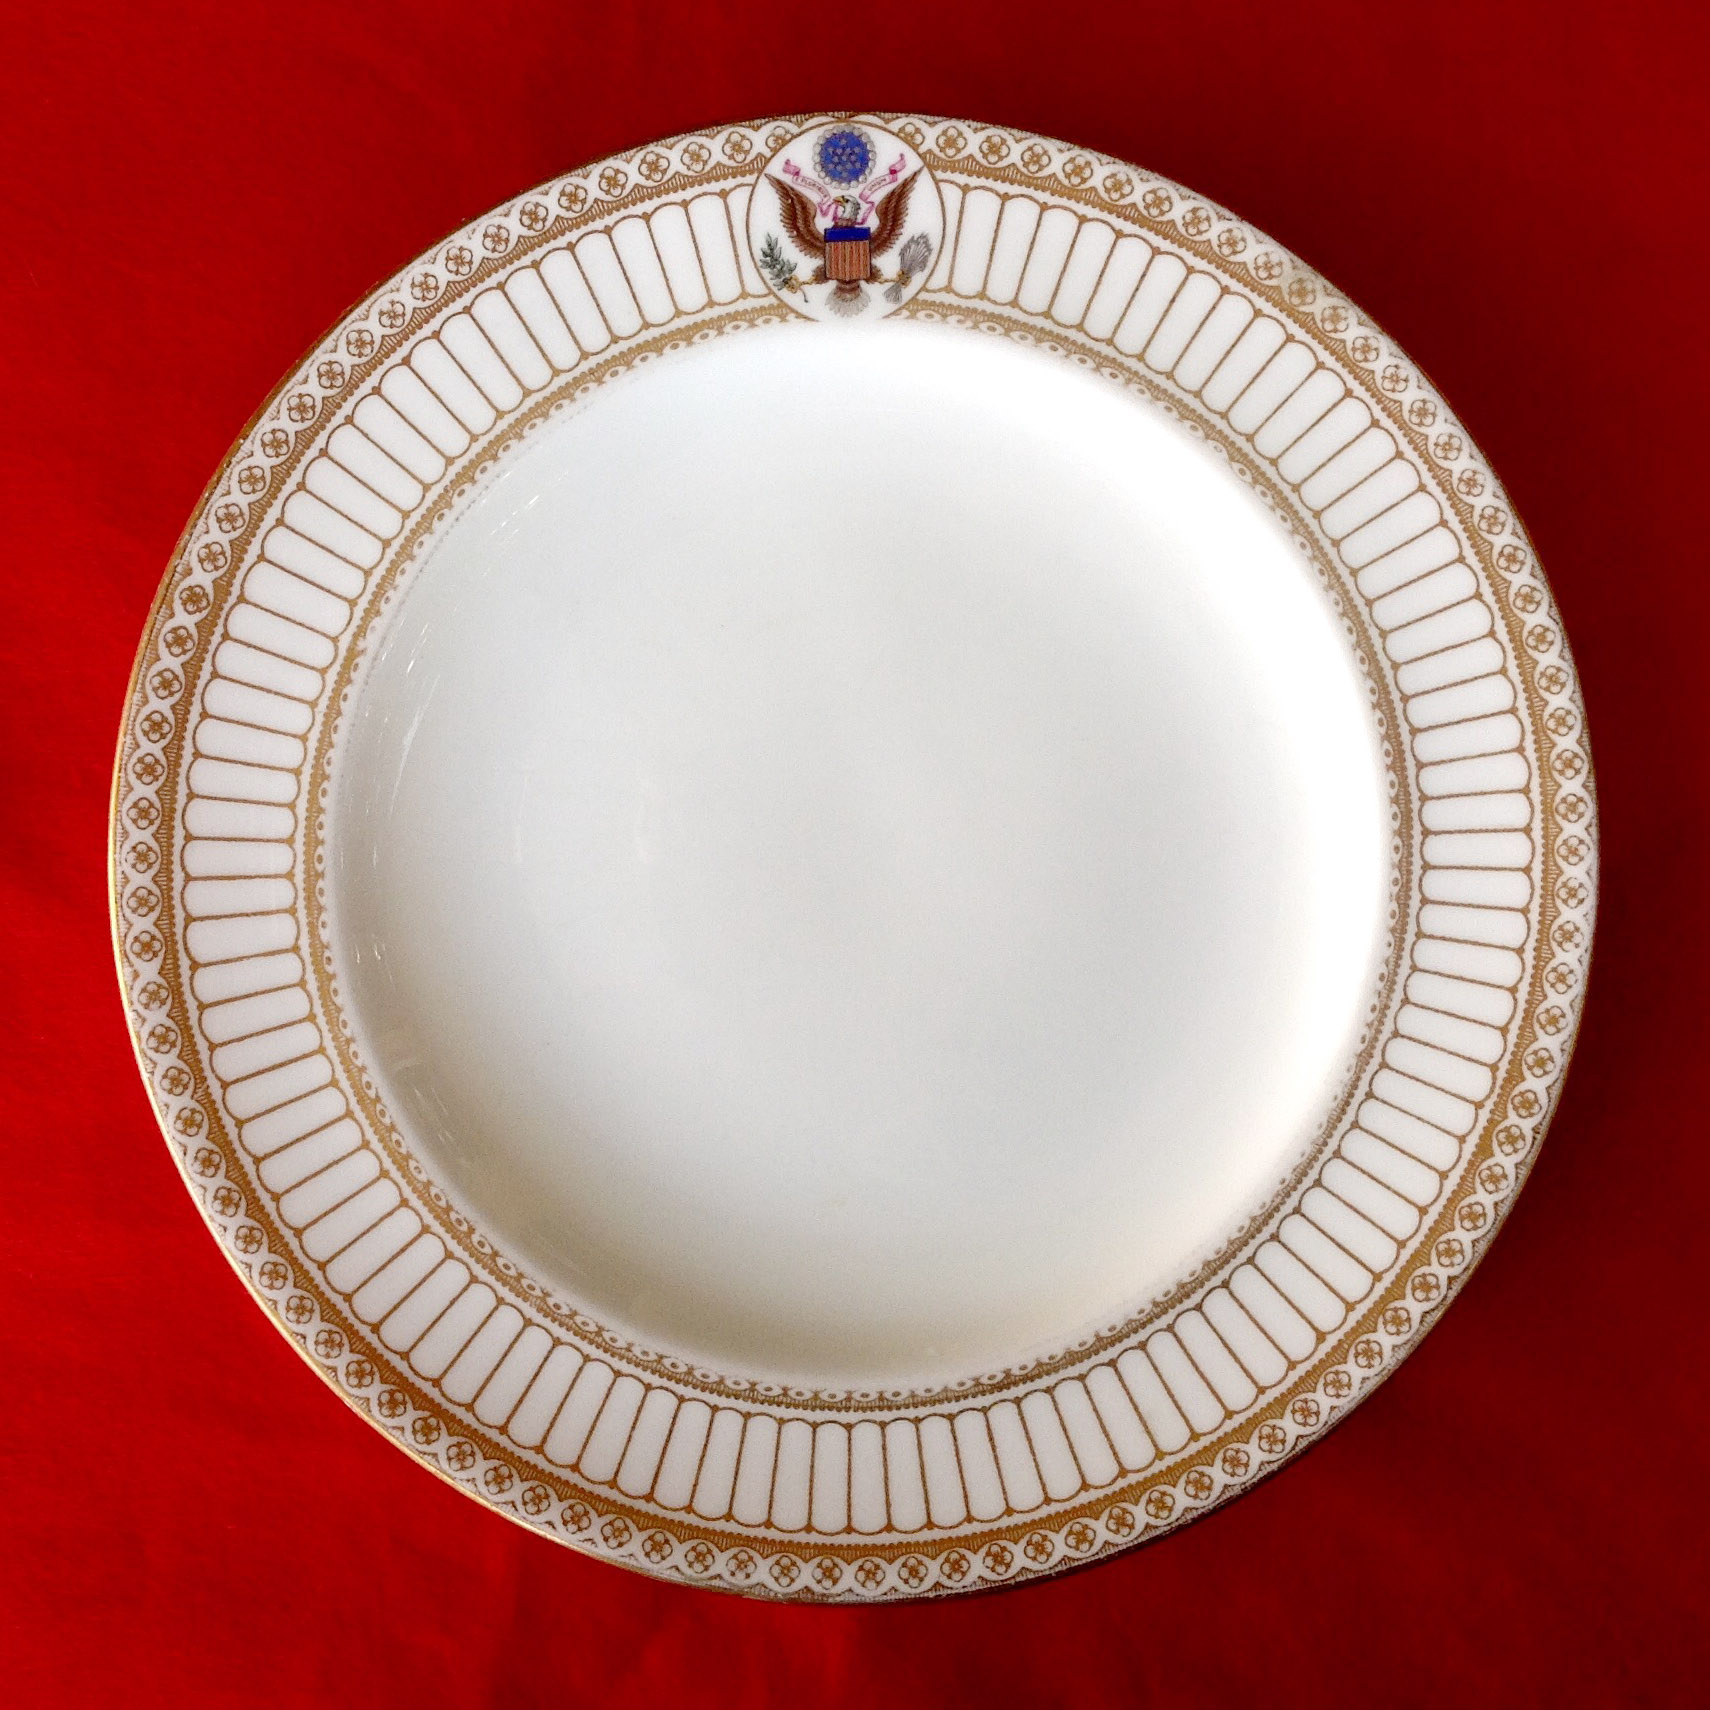 theodore teddy roosevelt white house china service dinner plate